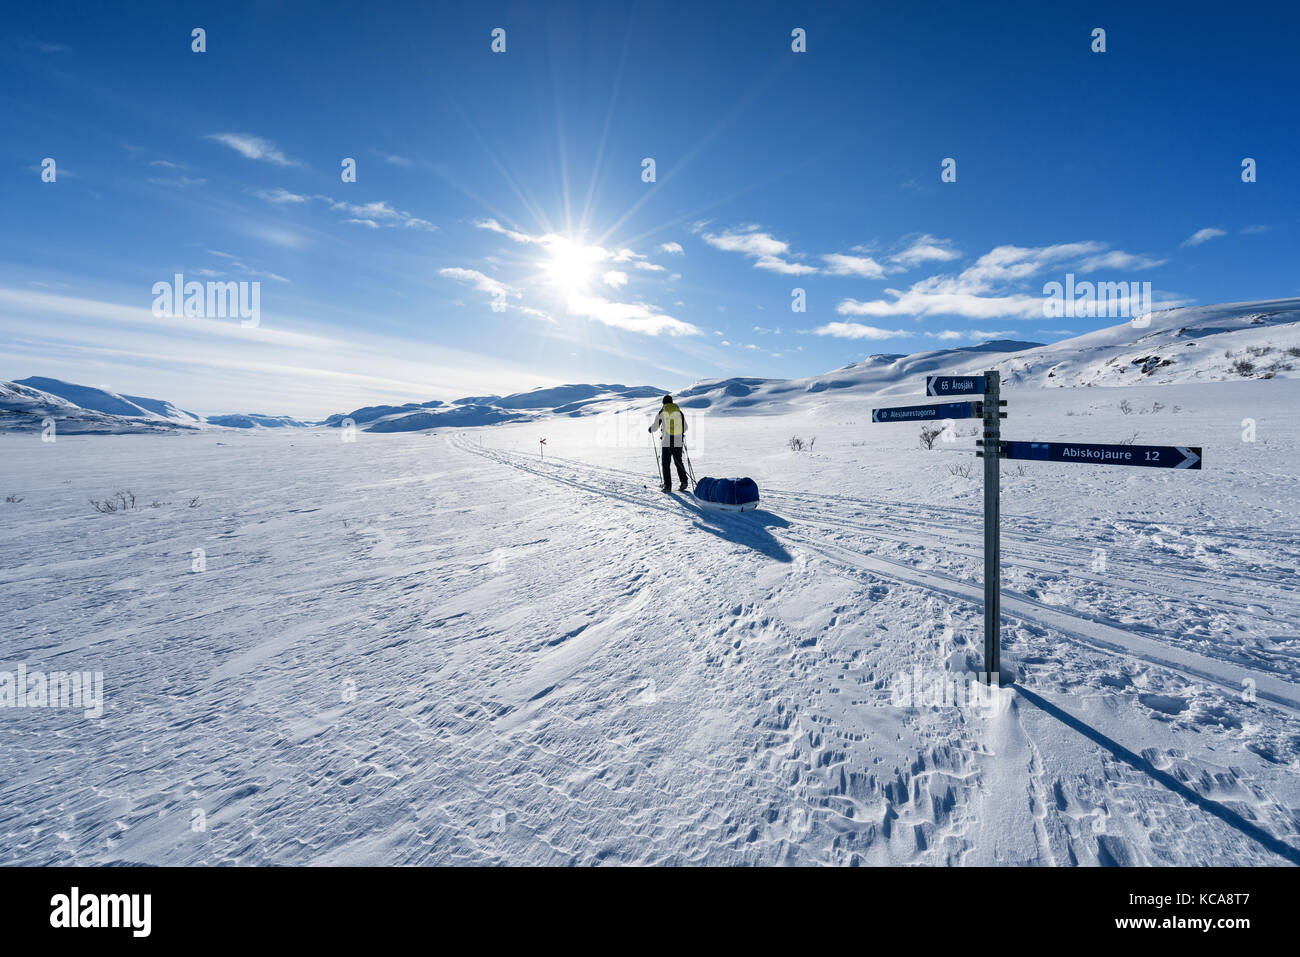 Ski touring in Kebnekaise massive area, Swedish Lapland, Sweden, Europe - Stock Image